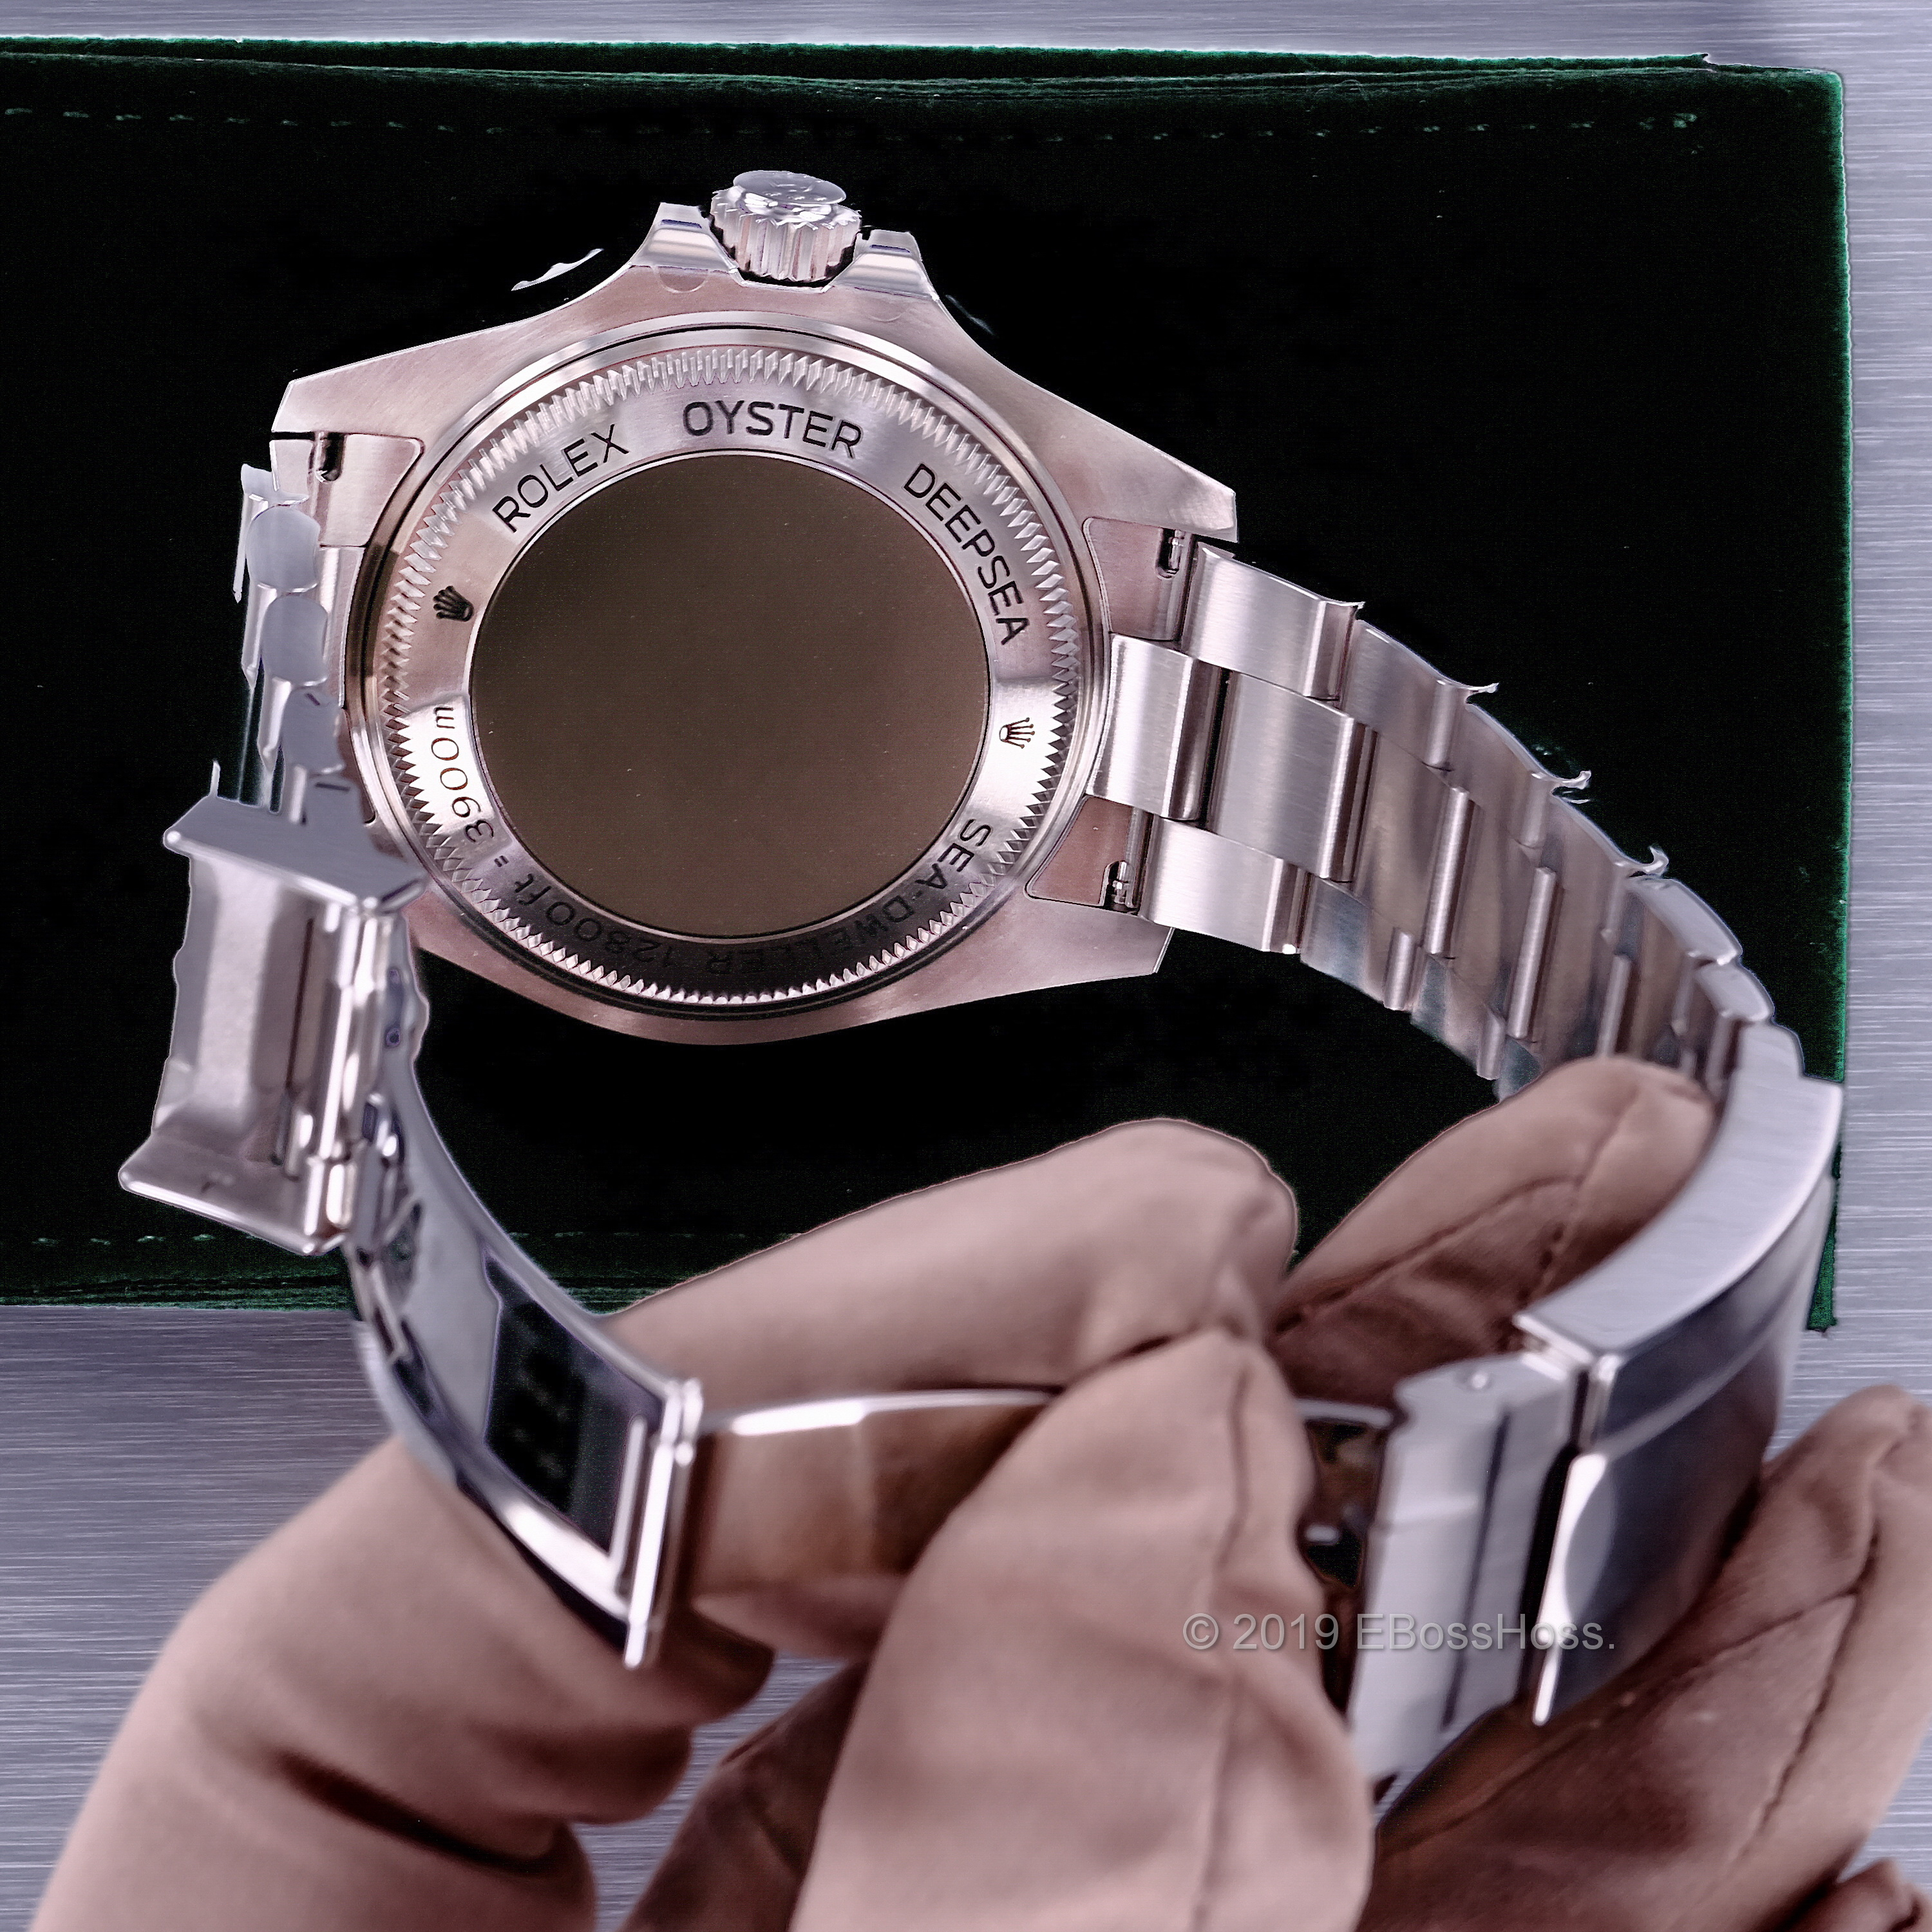 Late 2019 so Redesigned Watch Case, Movement, &  the 97% of the Rolex Warranty Remains!